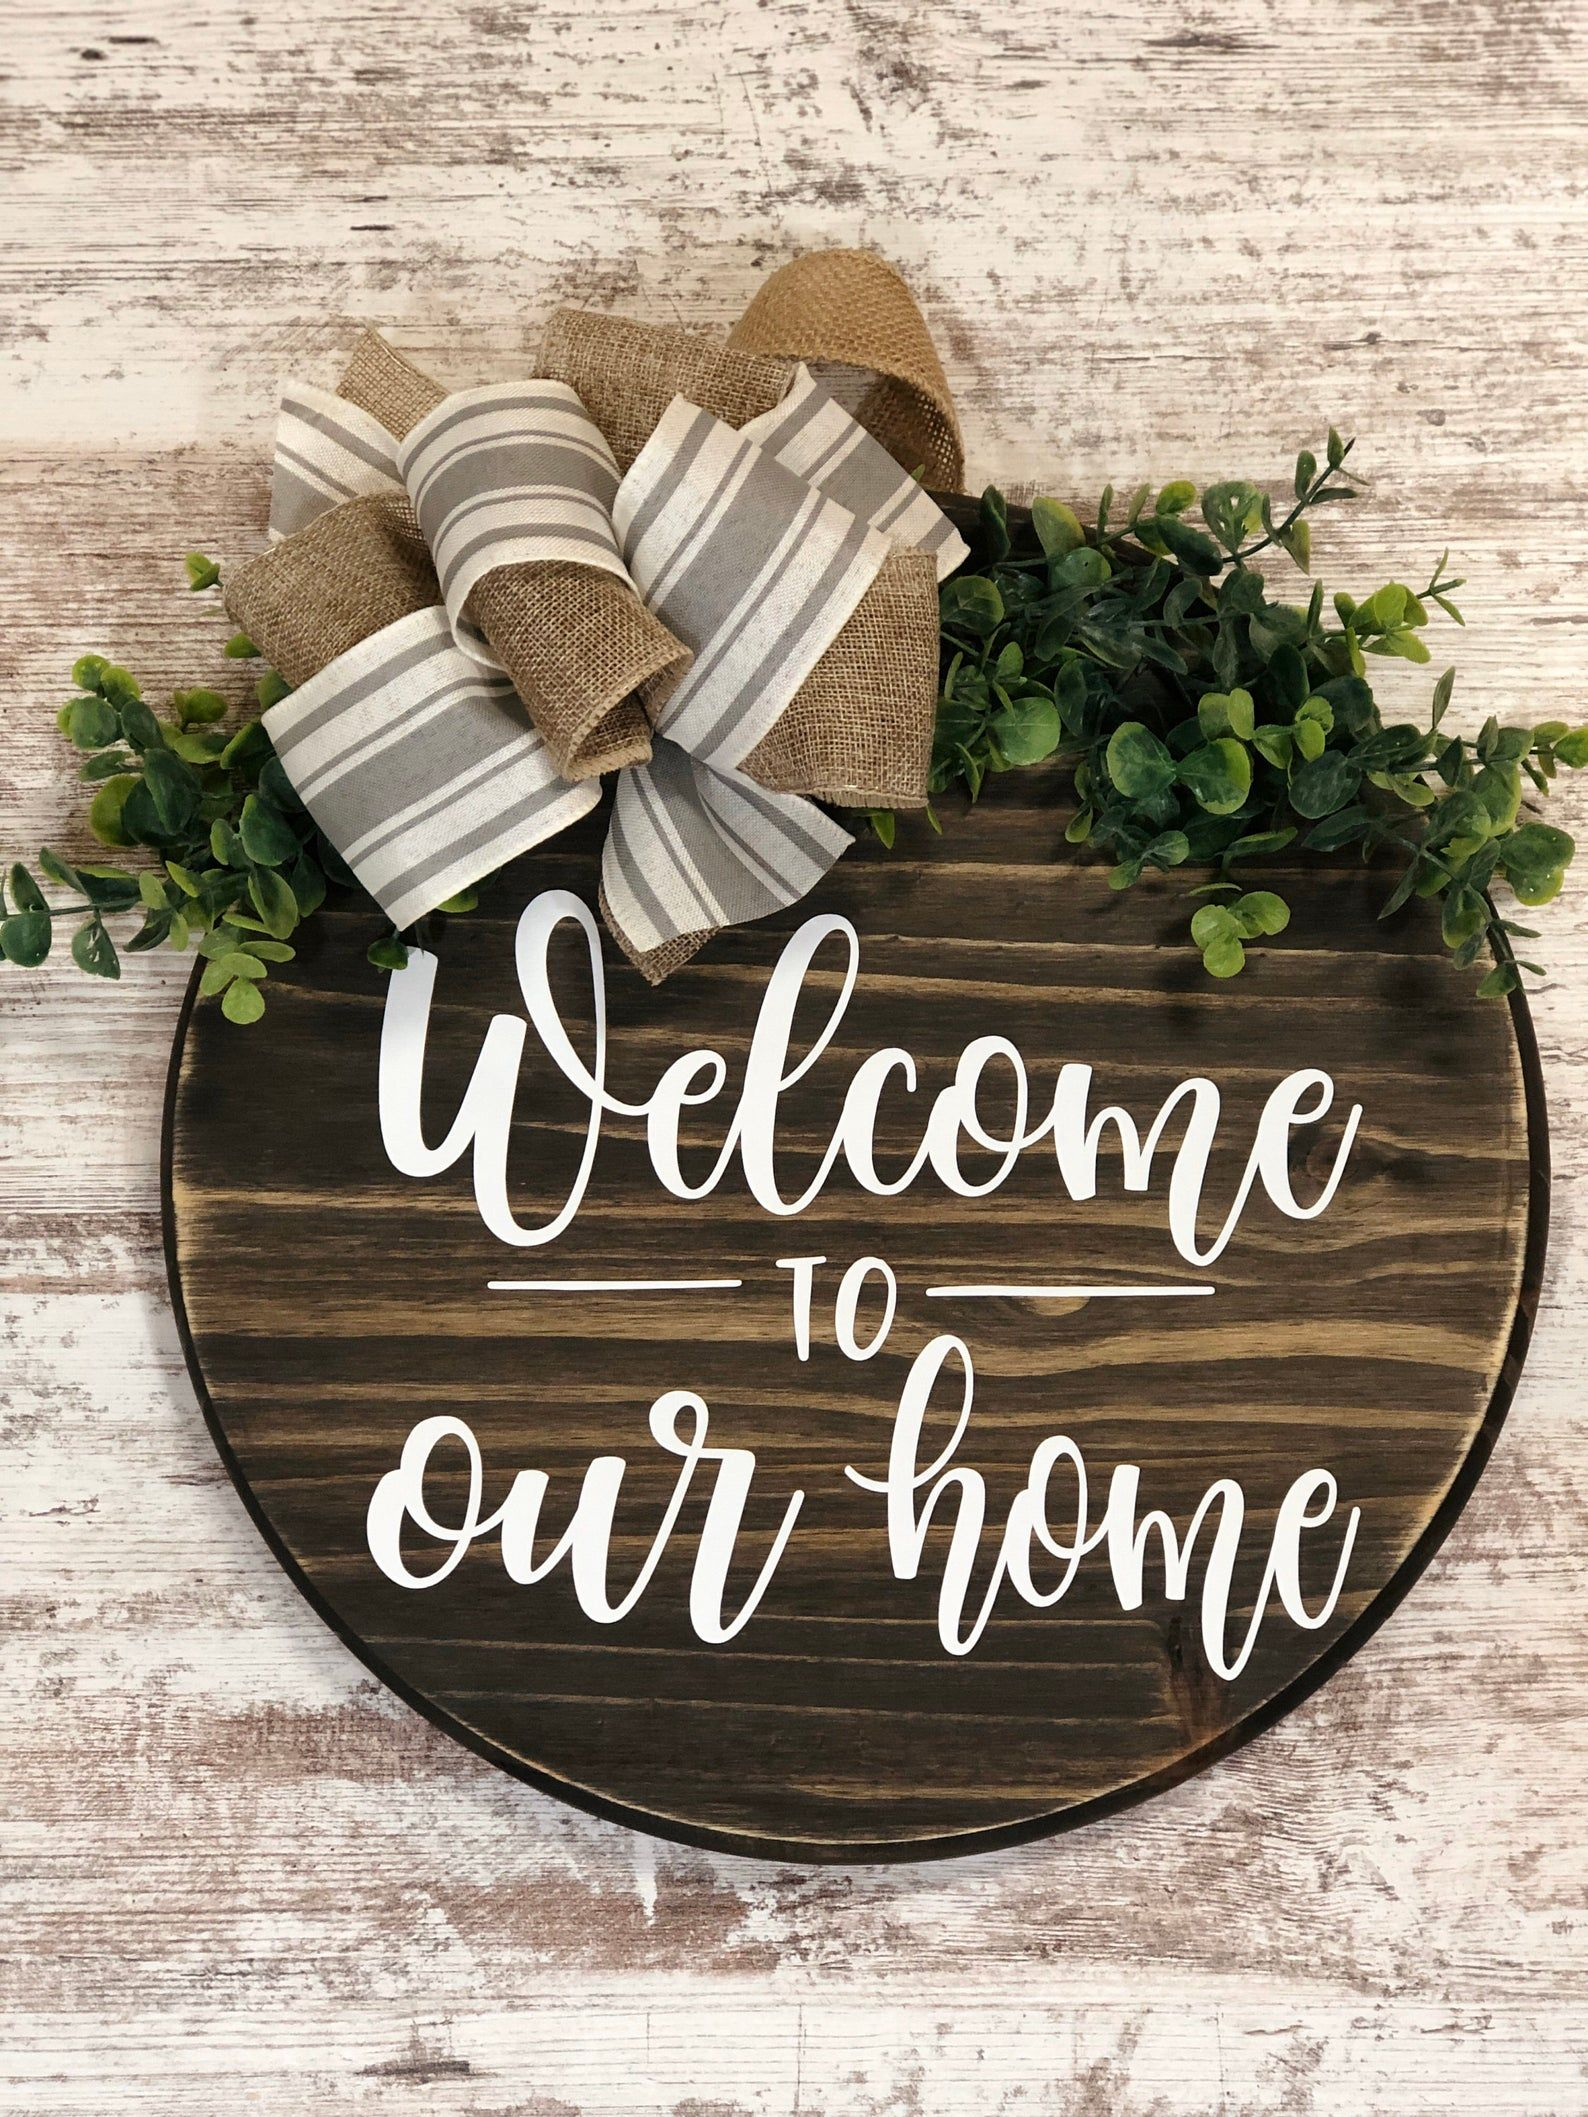 Welcome To Our Home Farmhouse Decor Wood Sign Door Hanger Welcome Home Home Decor Housewarming Gift Door Decor Wreath Wedding In 2020 Wooden Signs Diy Door Signs Diy Wooden Door Signs